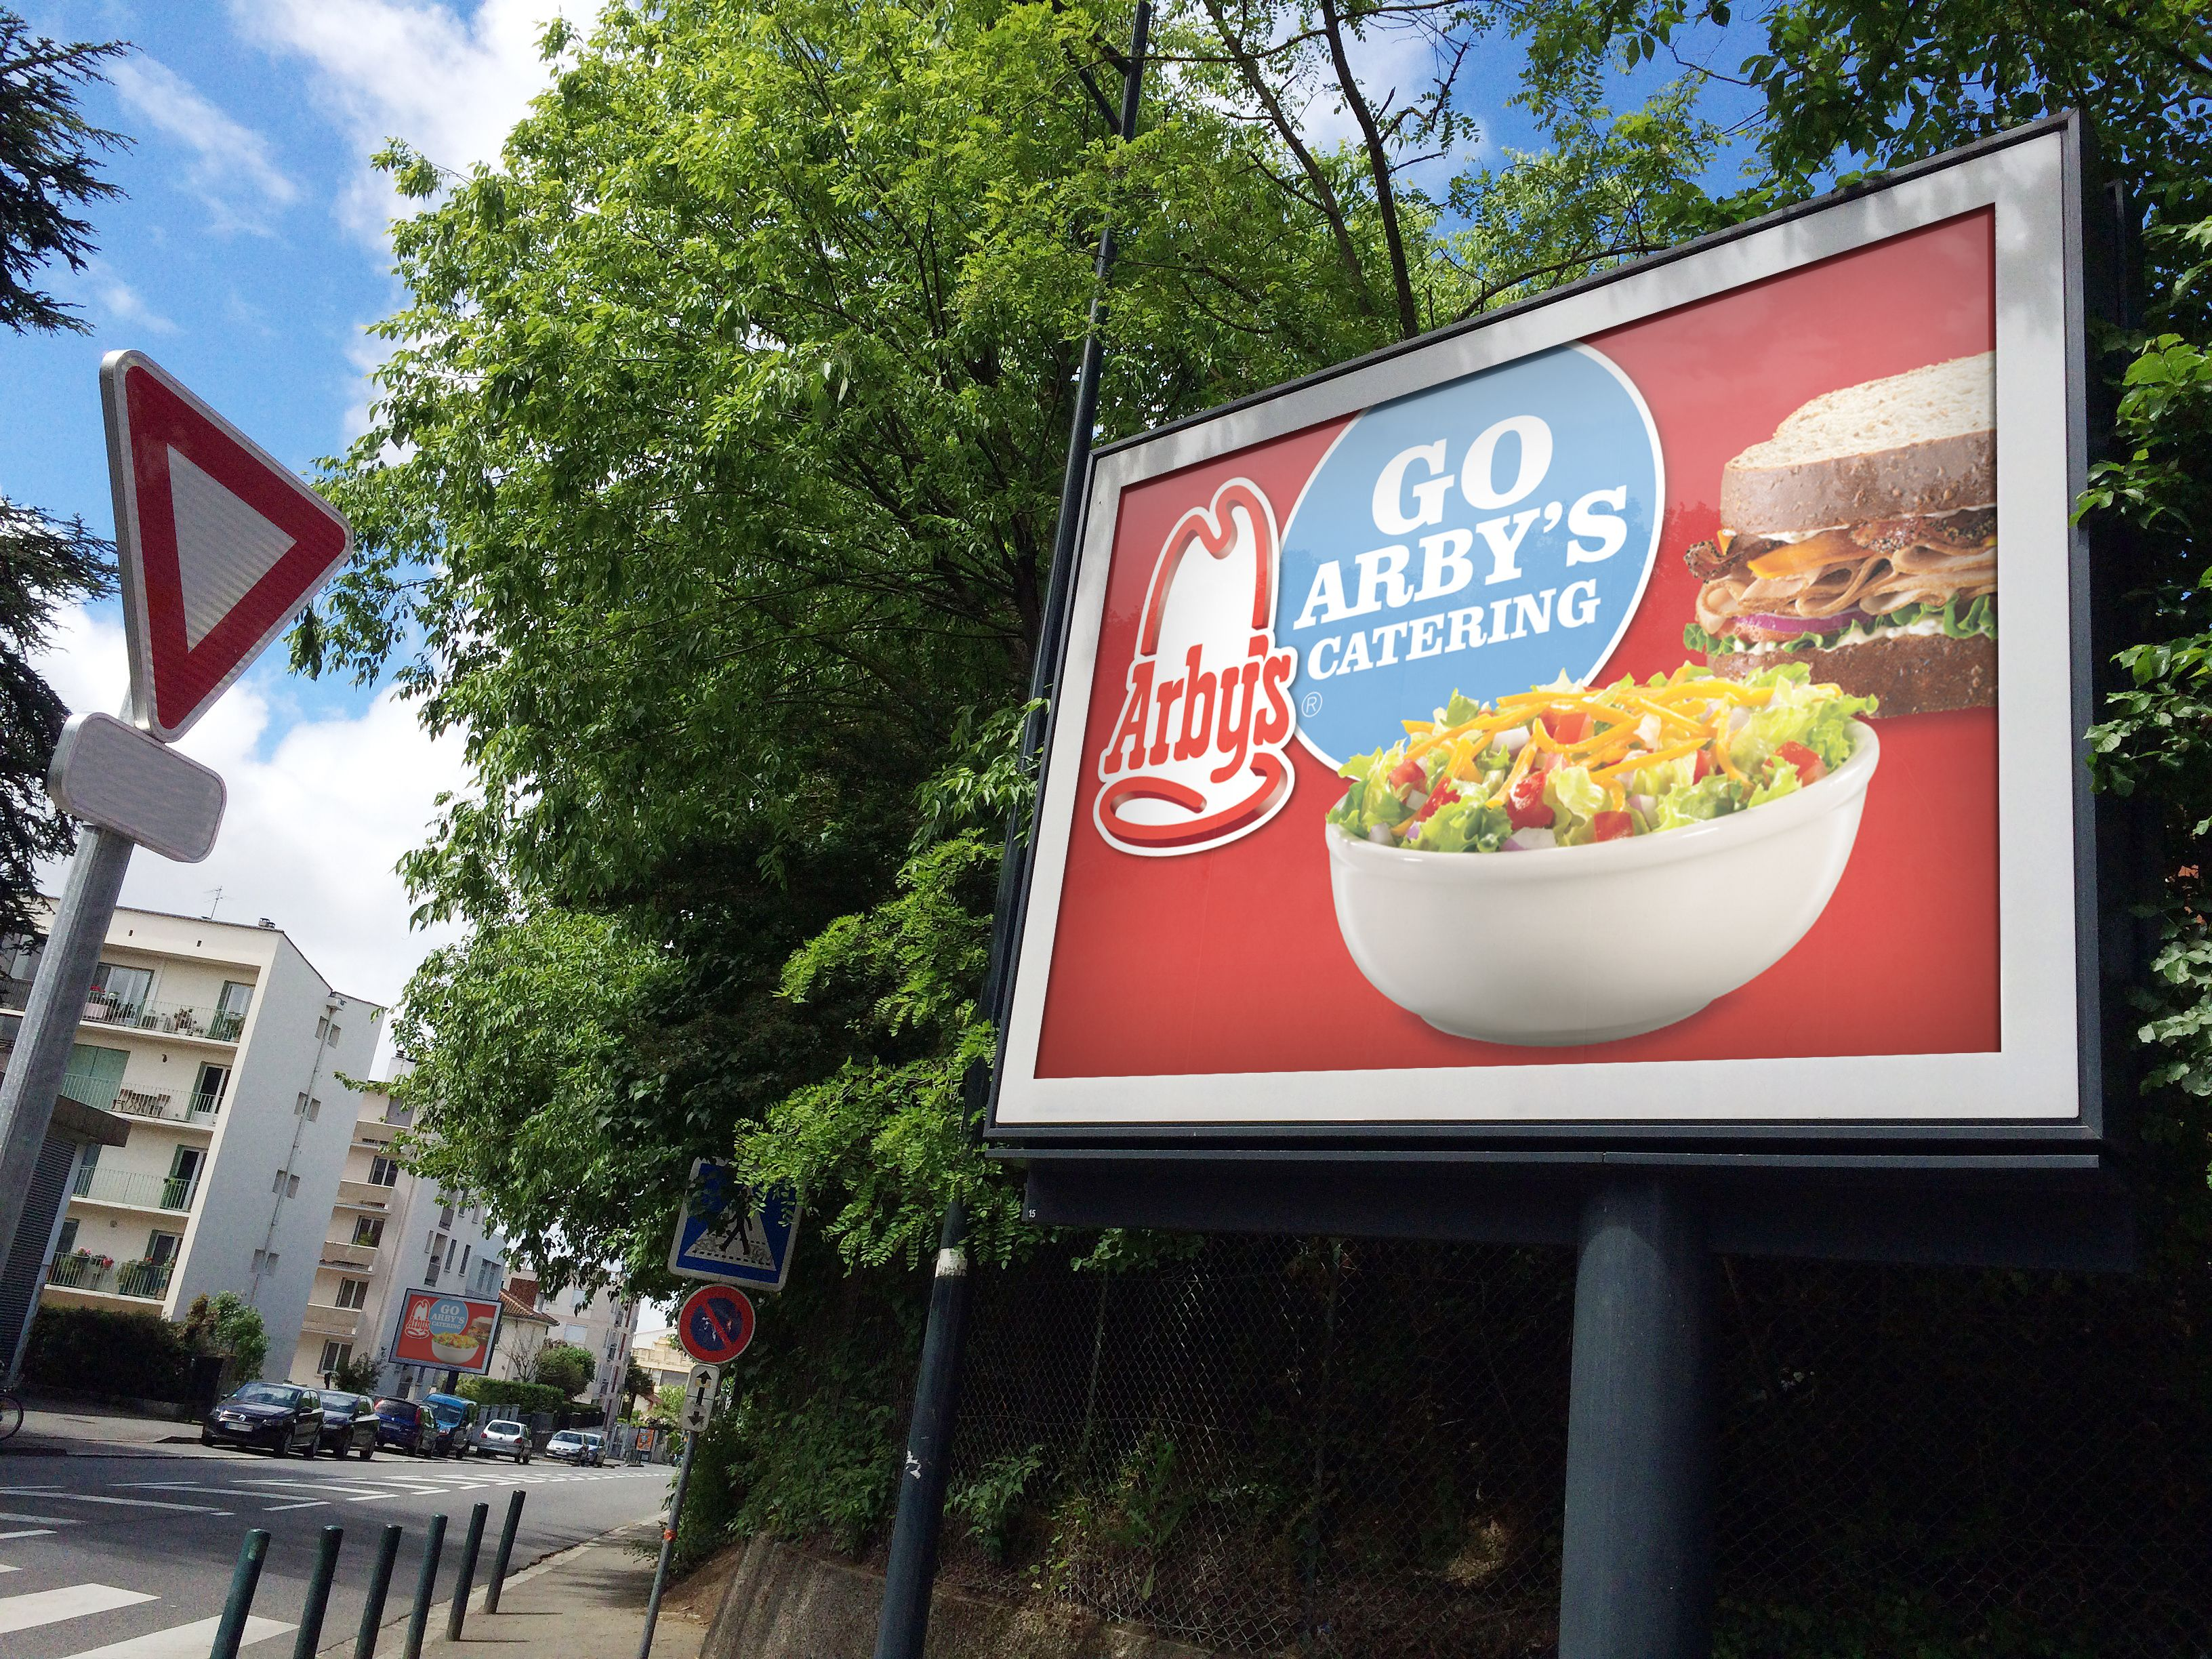 Sign with Arby's information in guerrilla marketing campaign